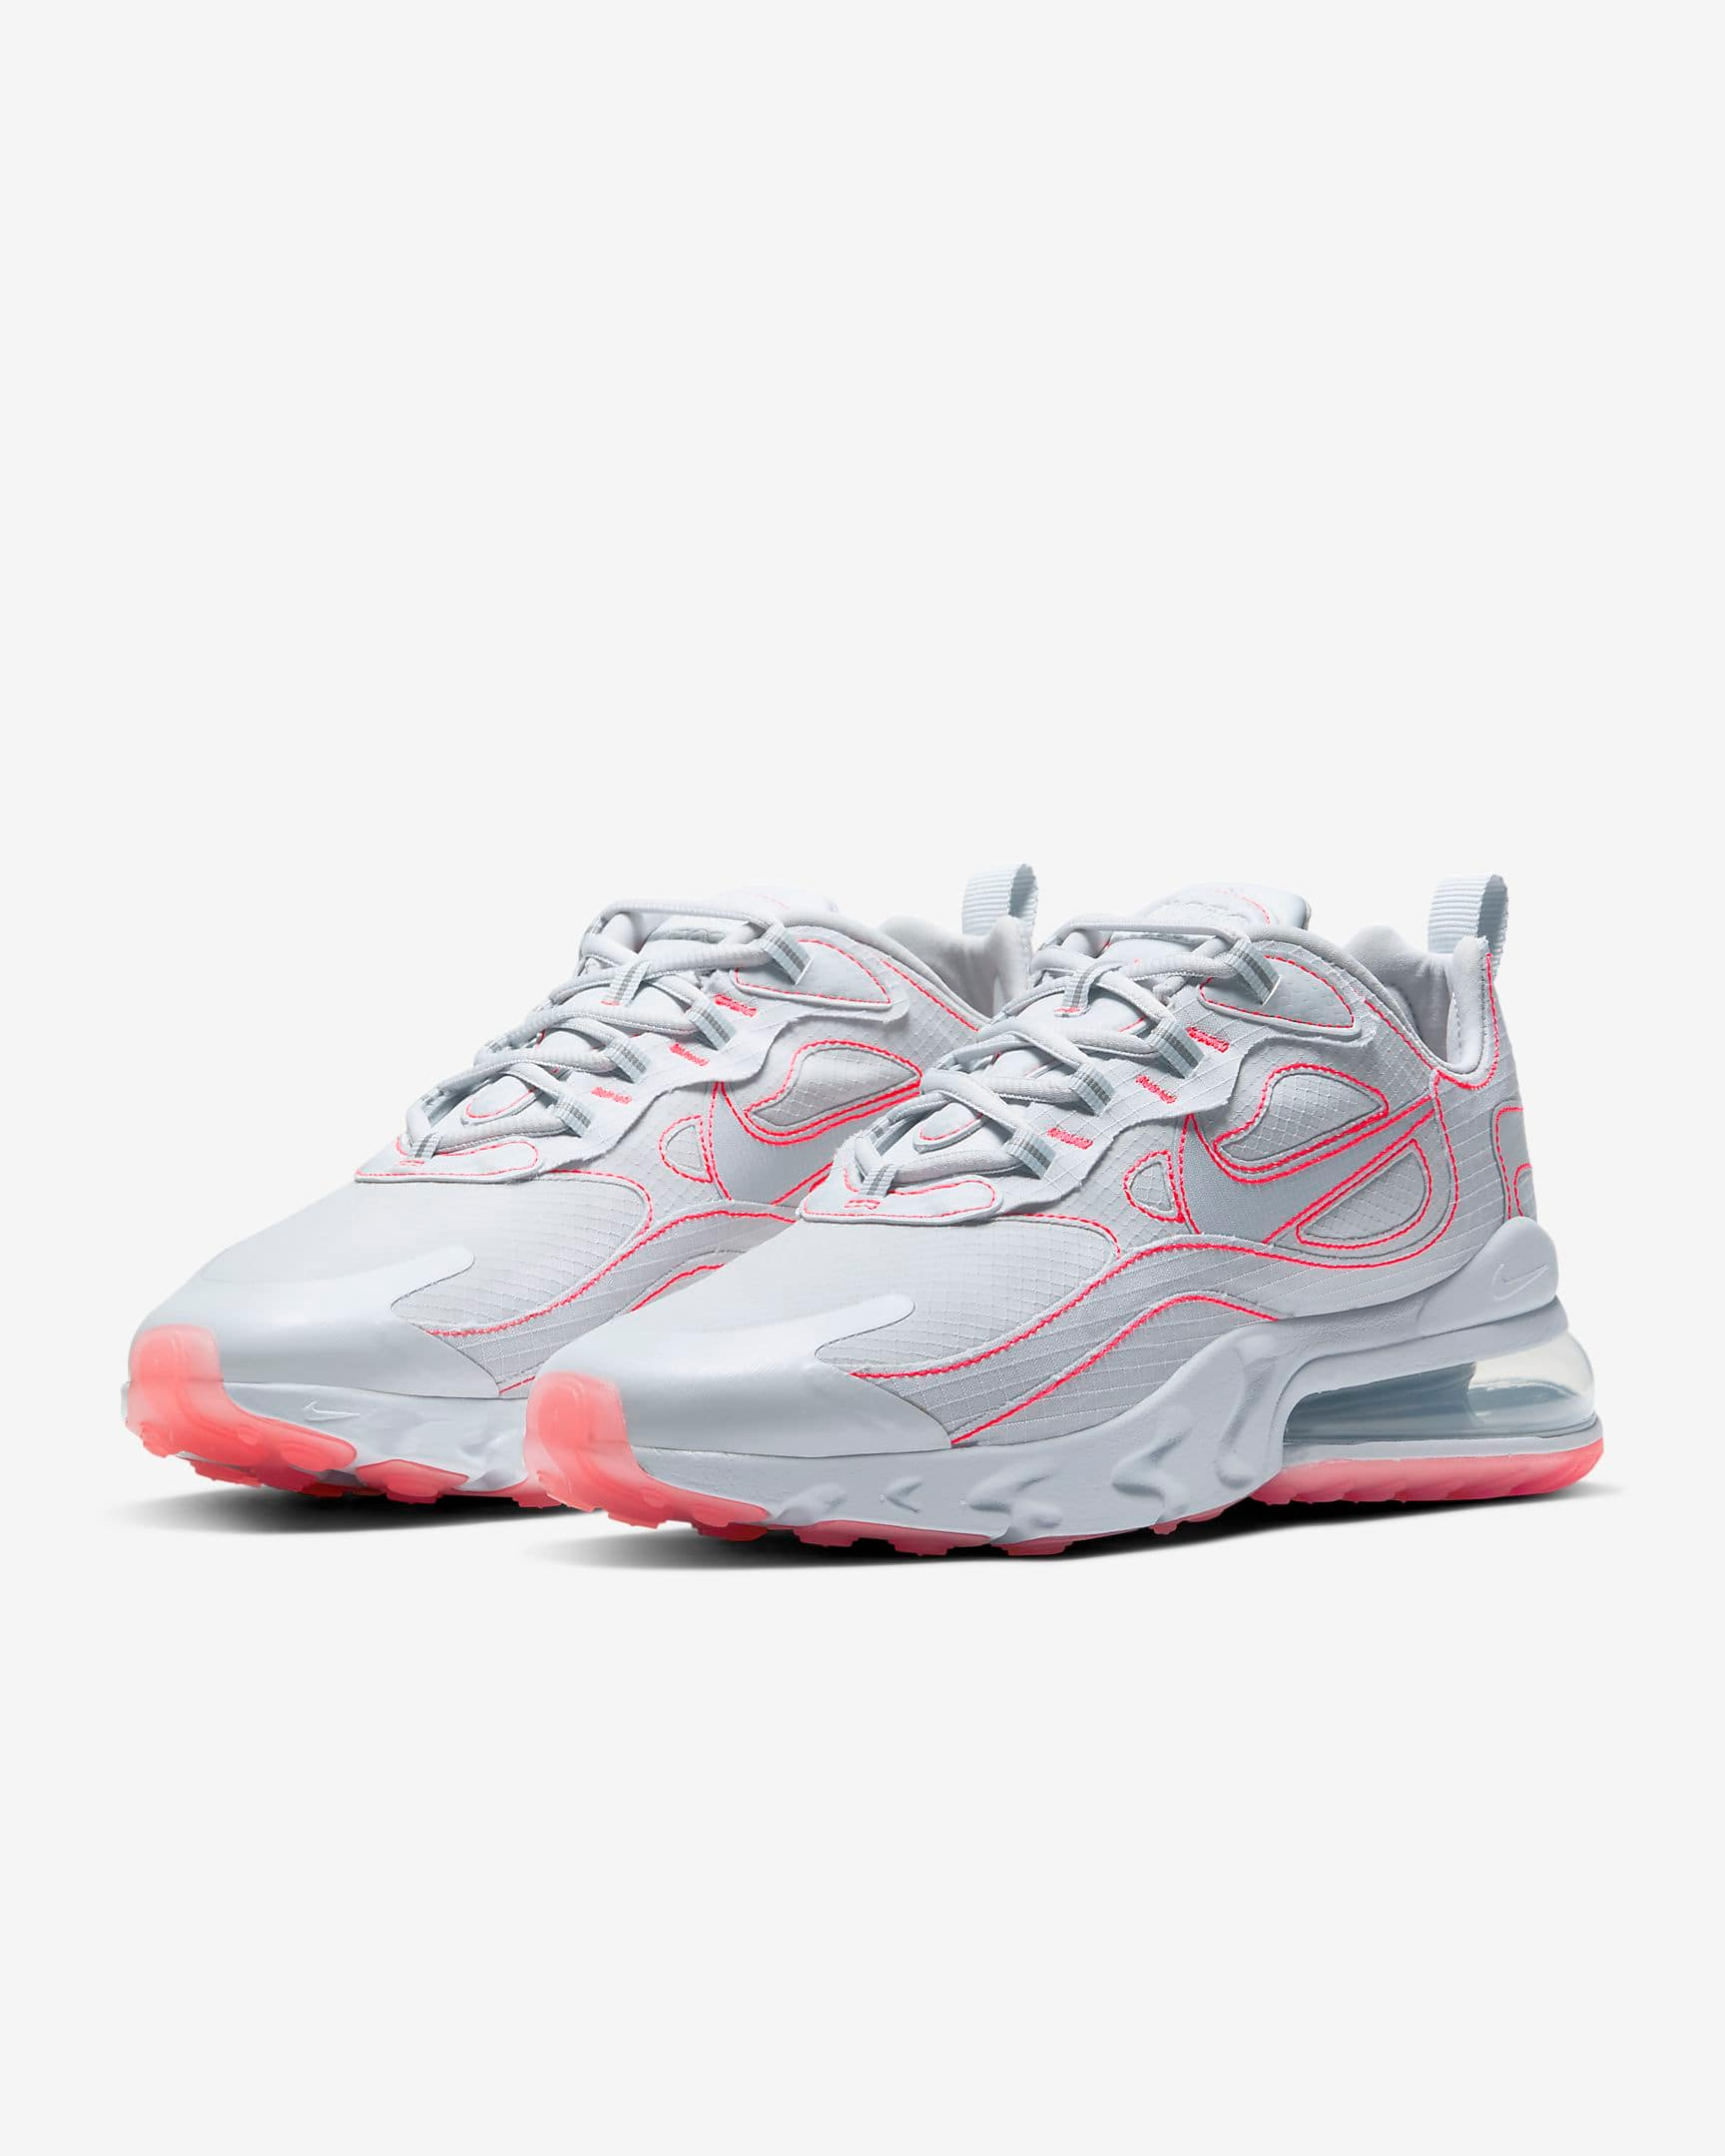 Students w/ SheerID Verify: Nike Women's Air Max 270 Special Edition $53.58 + Free Shipping